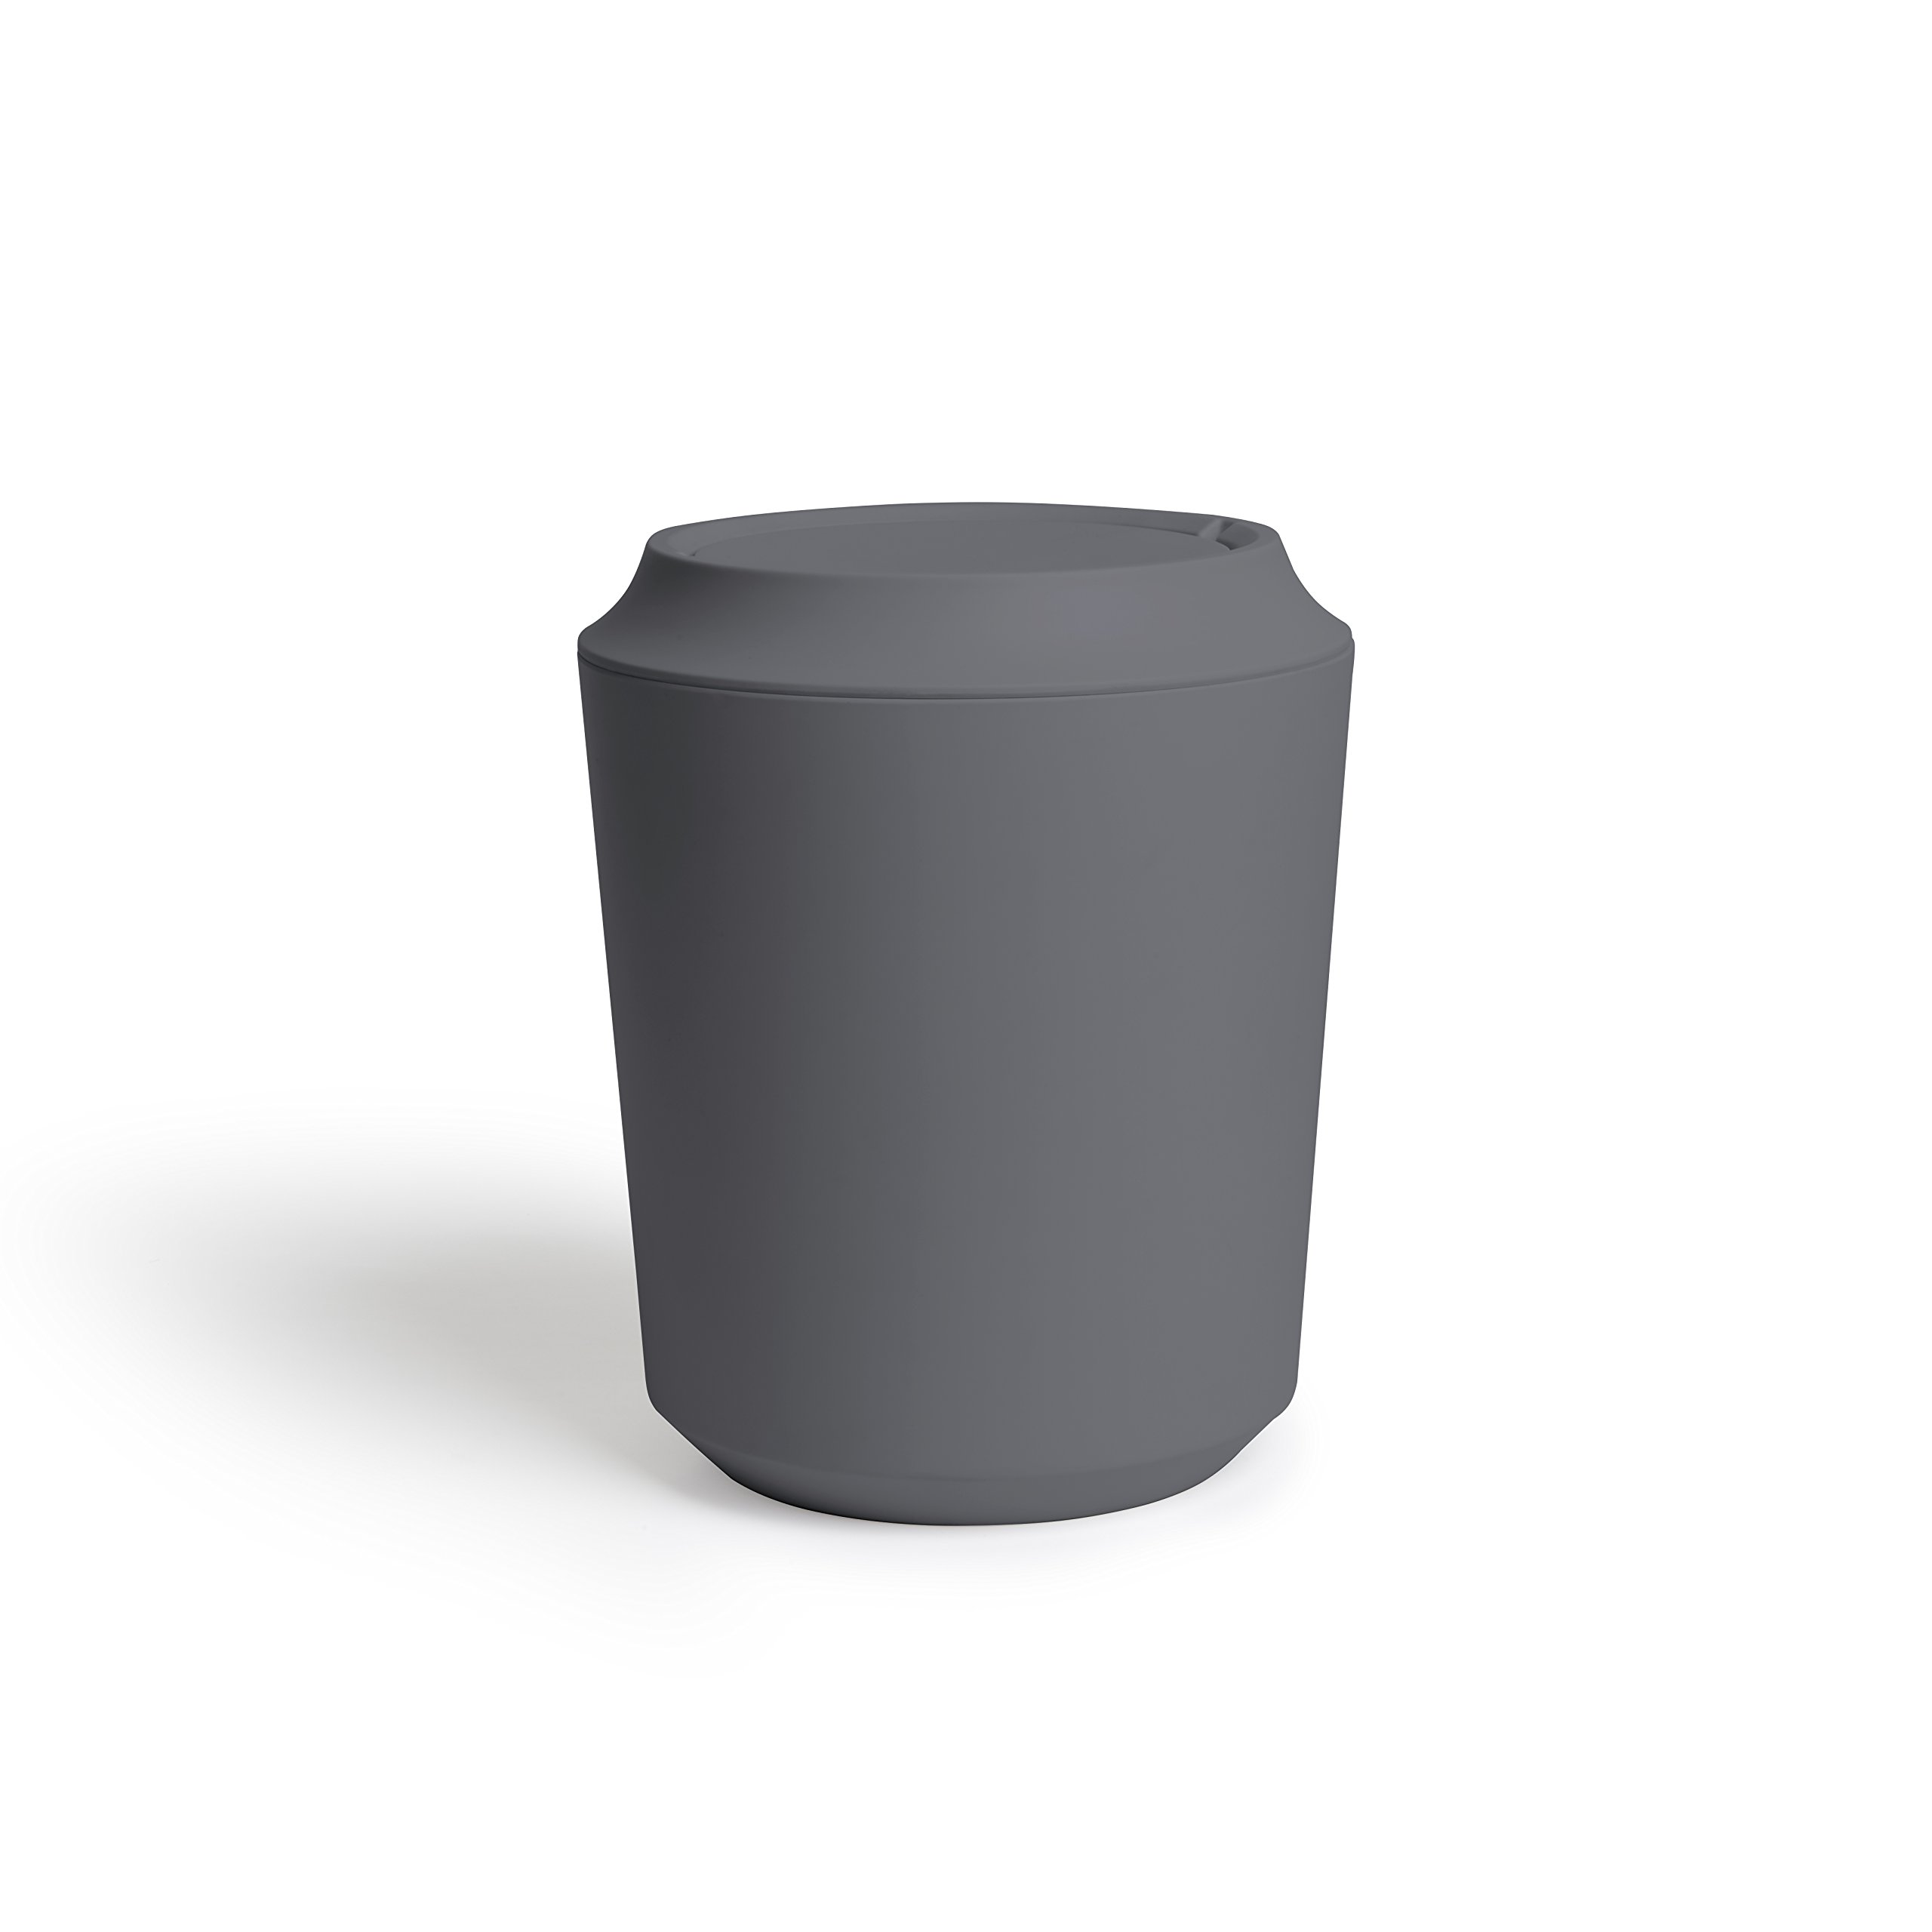 Umbra Corsa Bathroom Trash Can with Lid - Small Waste Basket, Charcoal